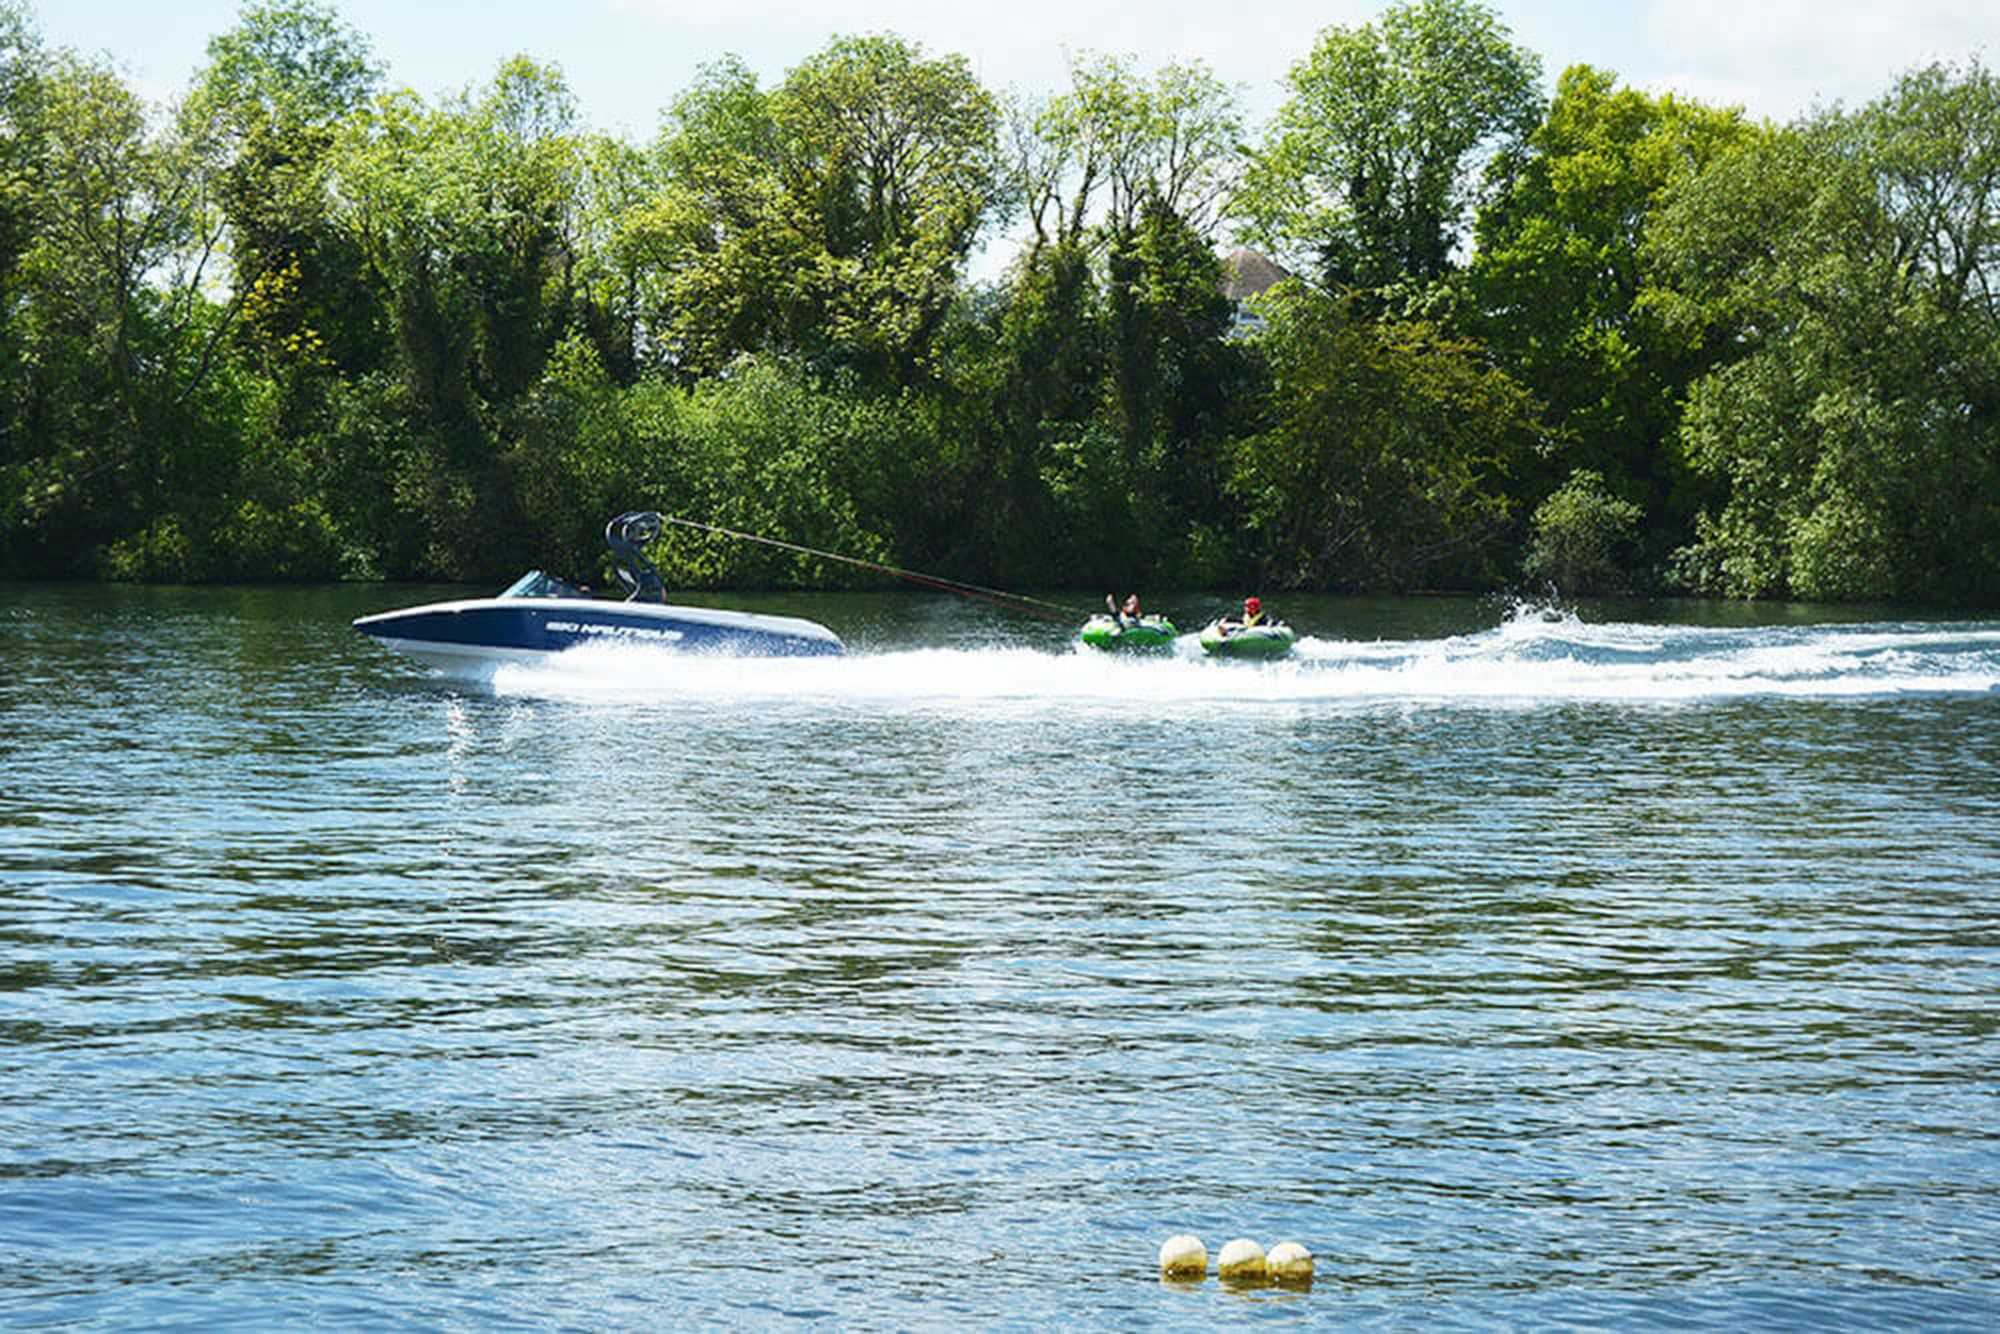 Spring Lake contains its own water ski lake - the perfect location for a family activity holiday